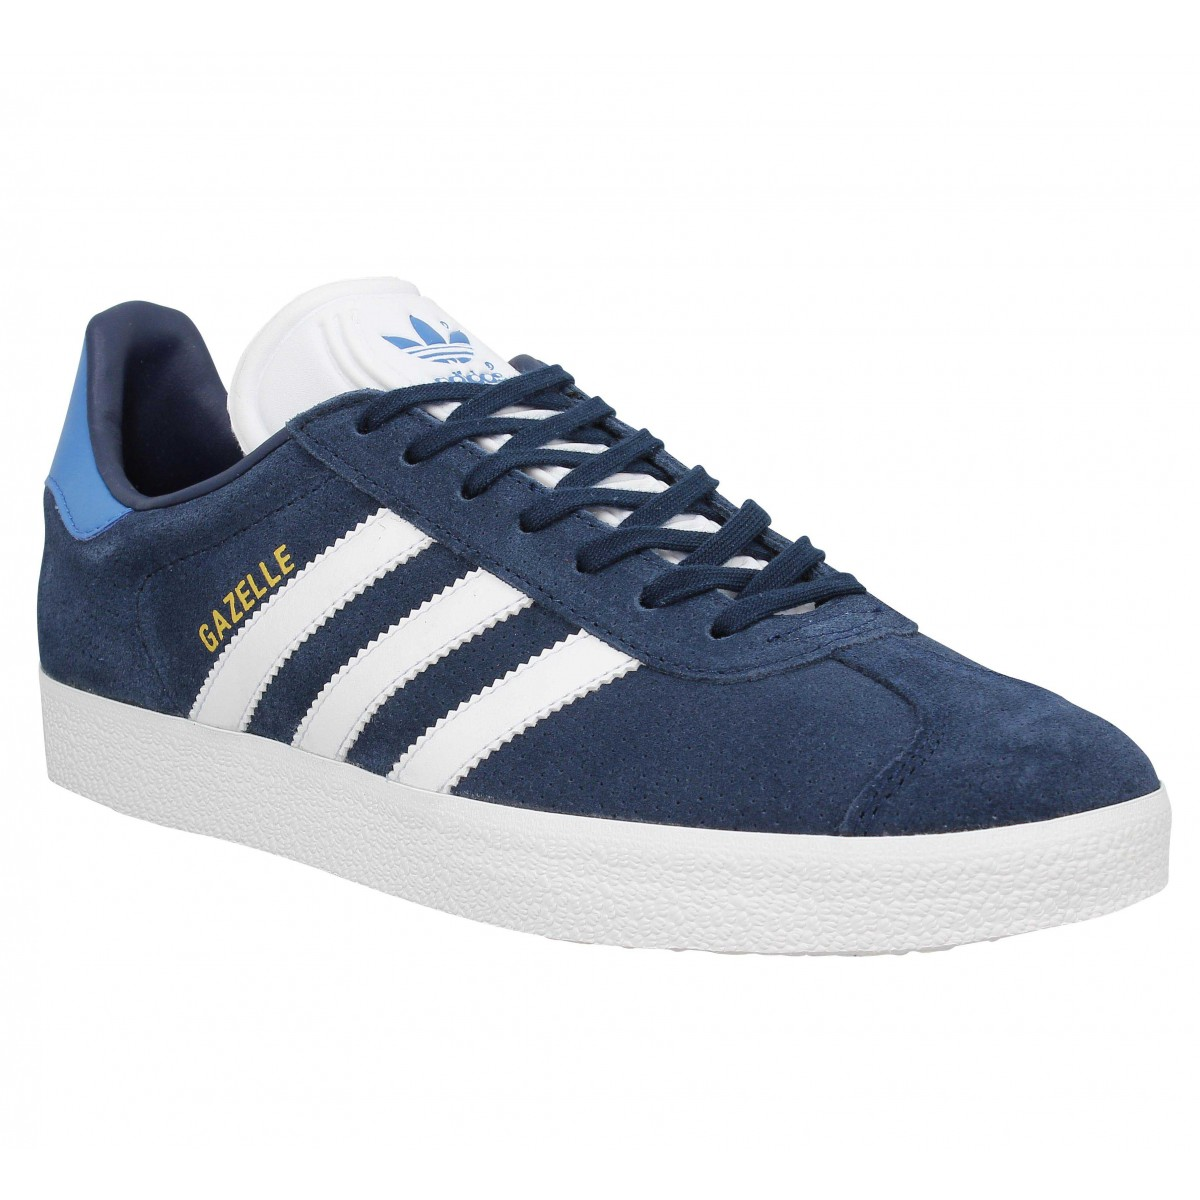 adidas gazelle velours homme bleu roi homme fanny chaussures. Black Bedroom Furniture Sets. Home Design Ideas